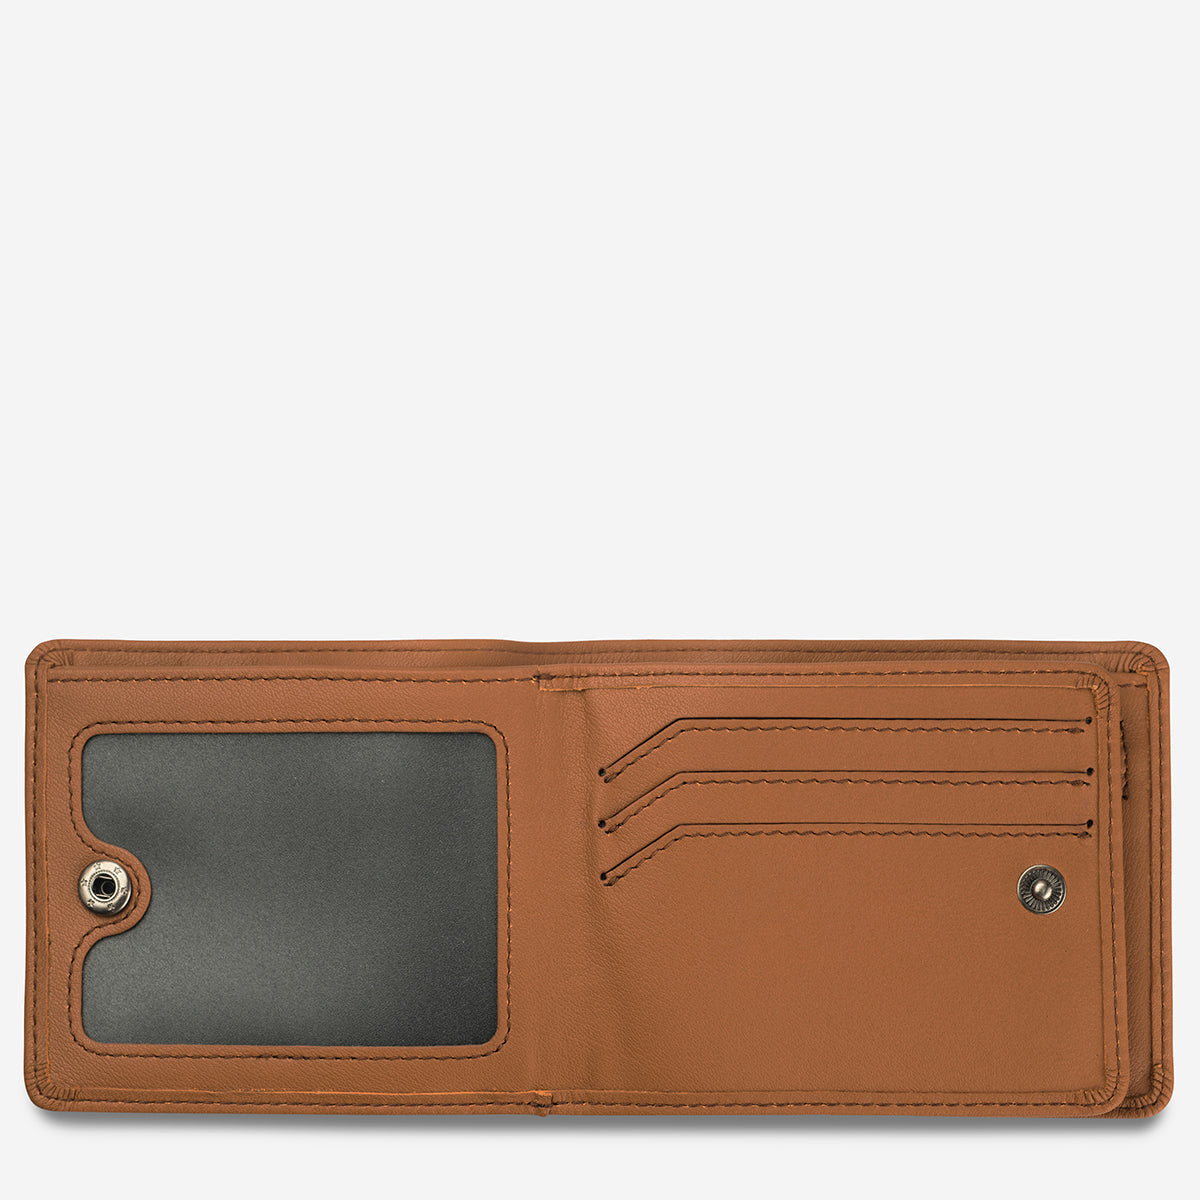 Status Anxiety Leonard Men's Bi-Fold Leather Wallet - Camel